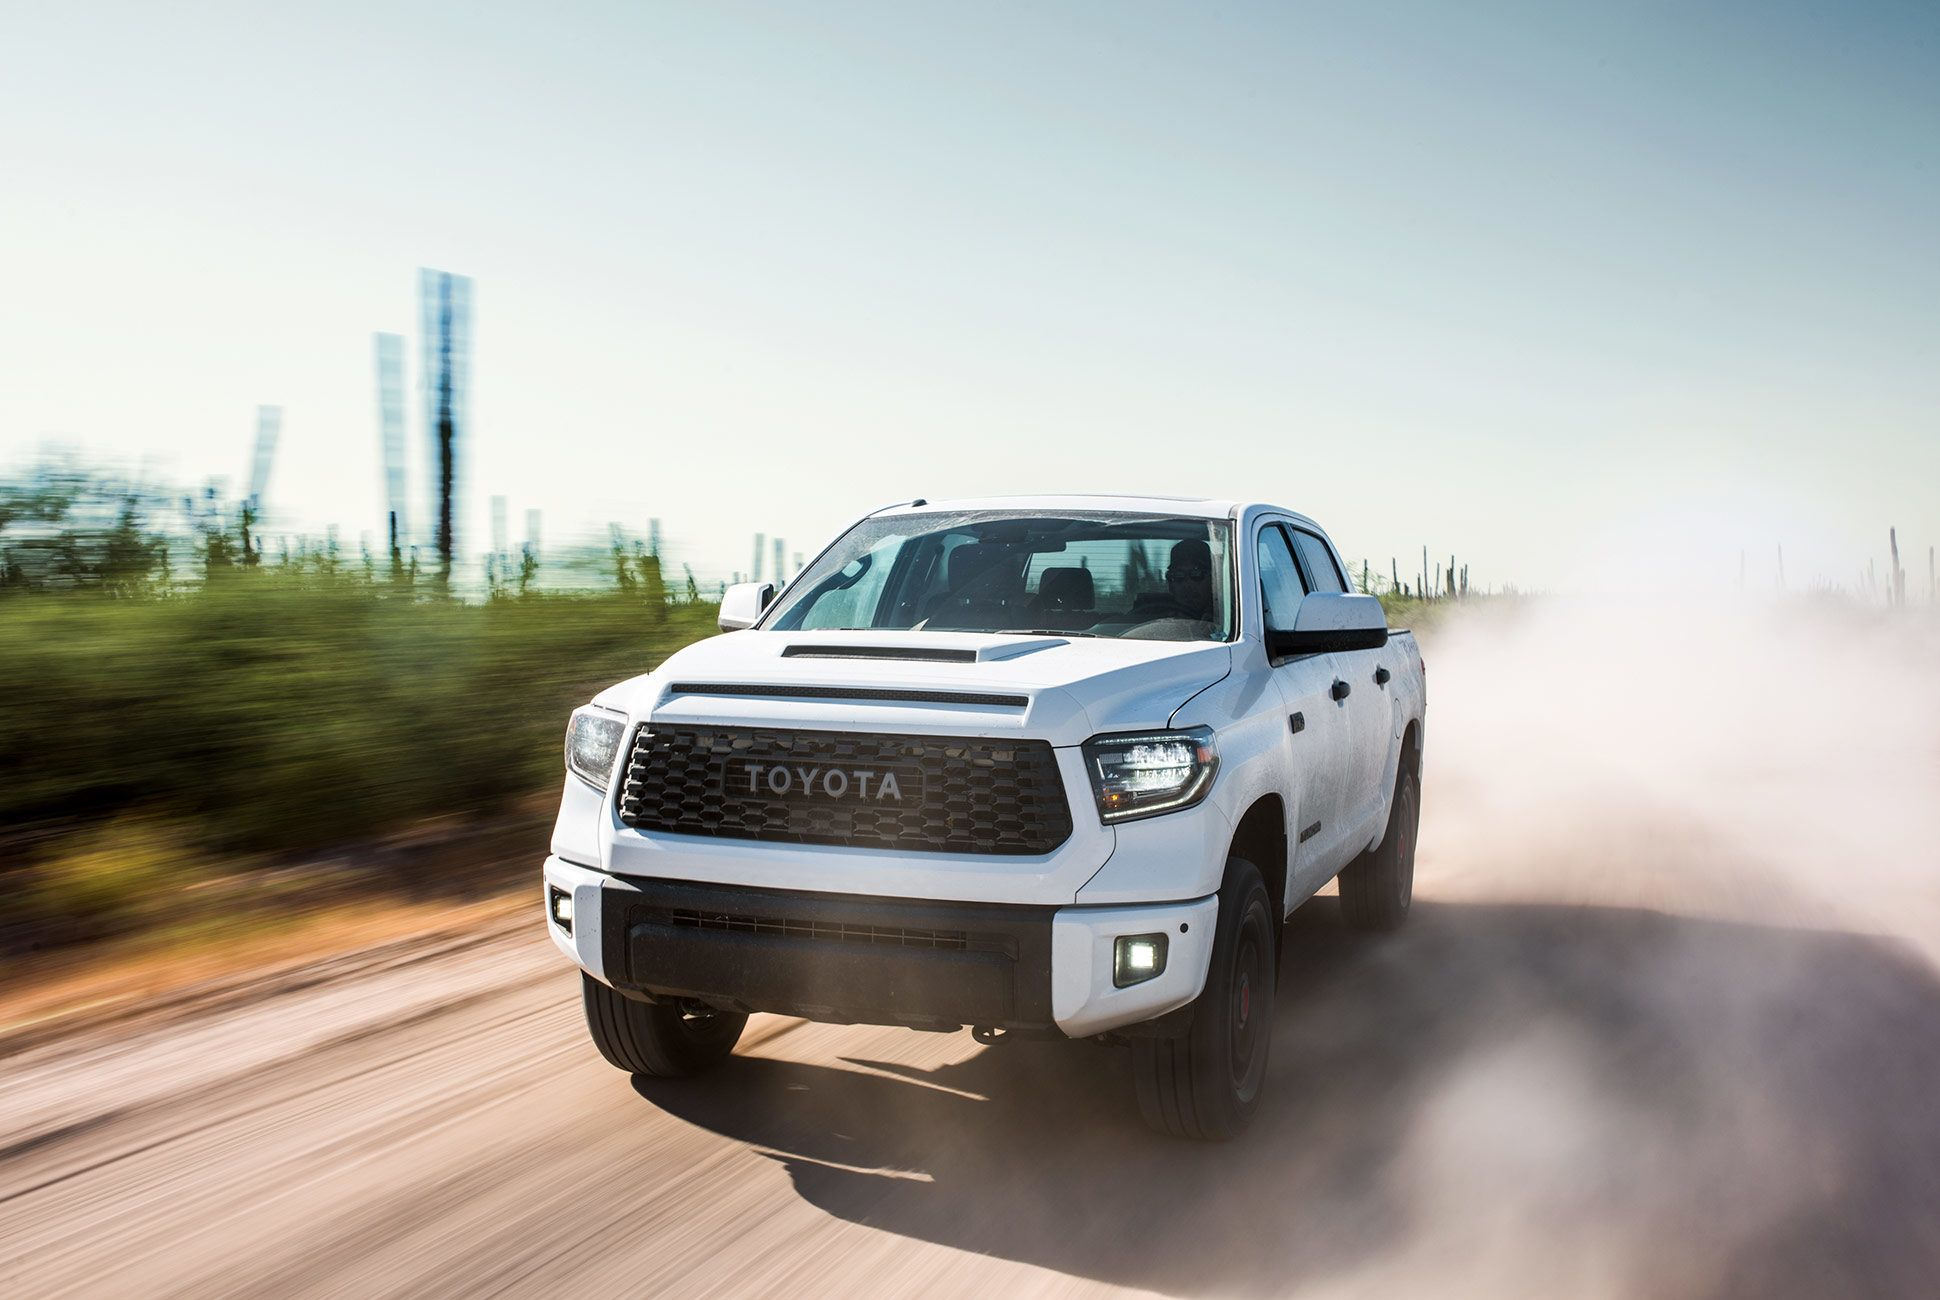 Toyota Wants to Sell You an Indomitable Overlander